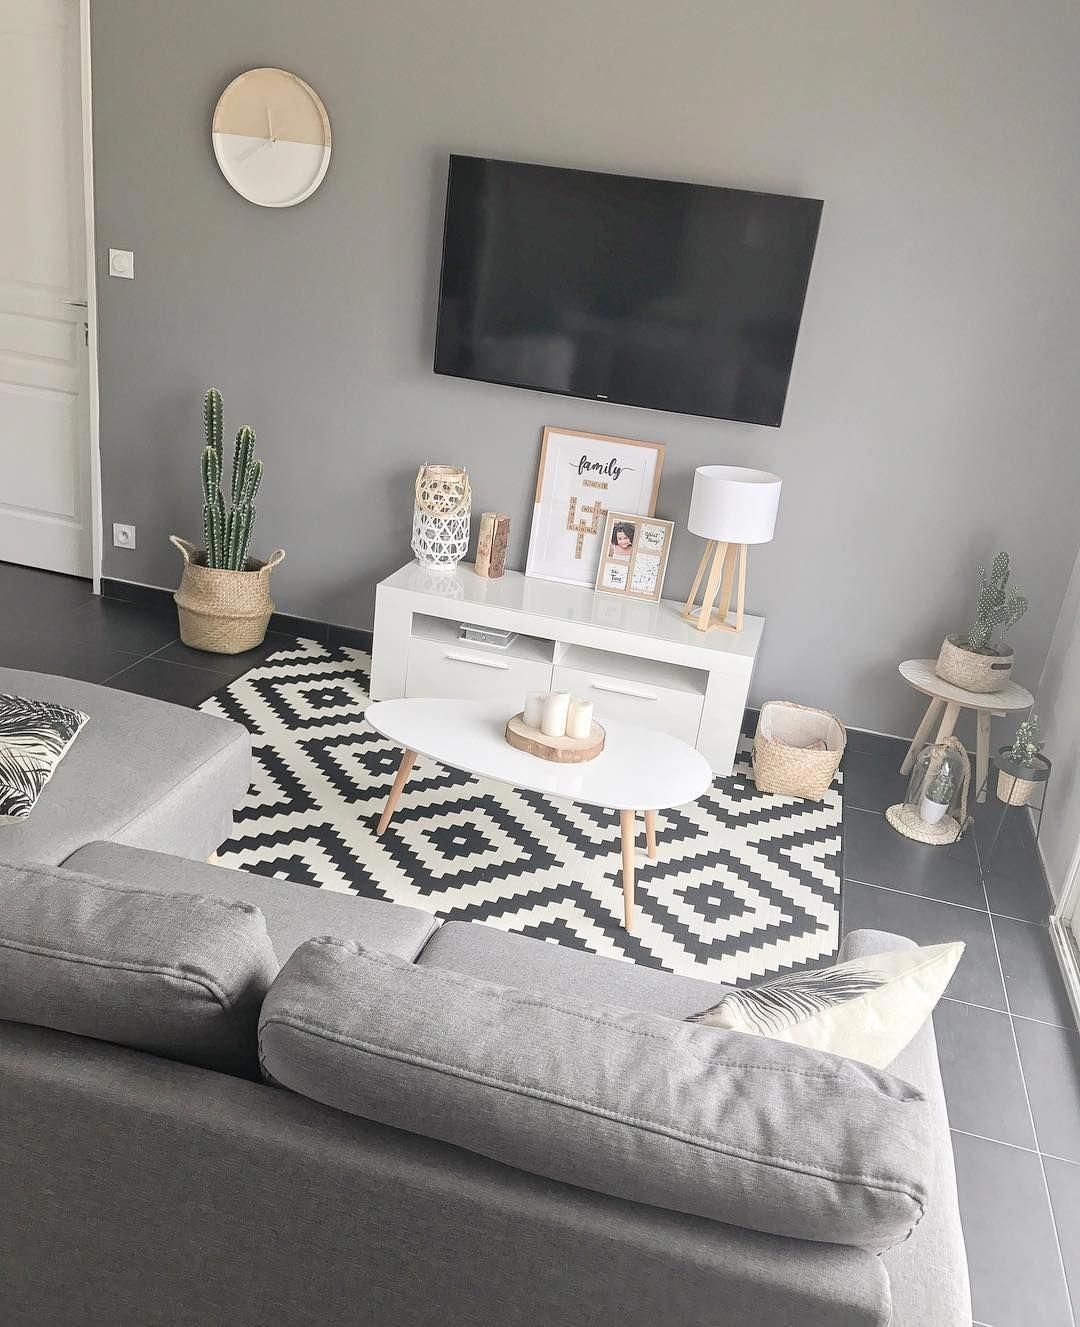 Exceptional Living Room Decor Are Offered On Our Internet Site Take A Look And You Wil Apartment Living Room Design Small Living Room Decor Small Living Rooms Lovely living room decor